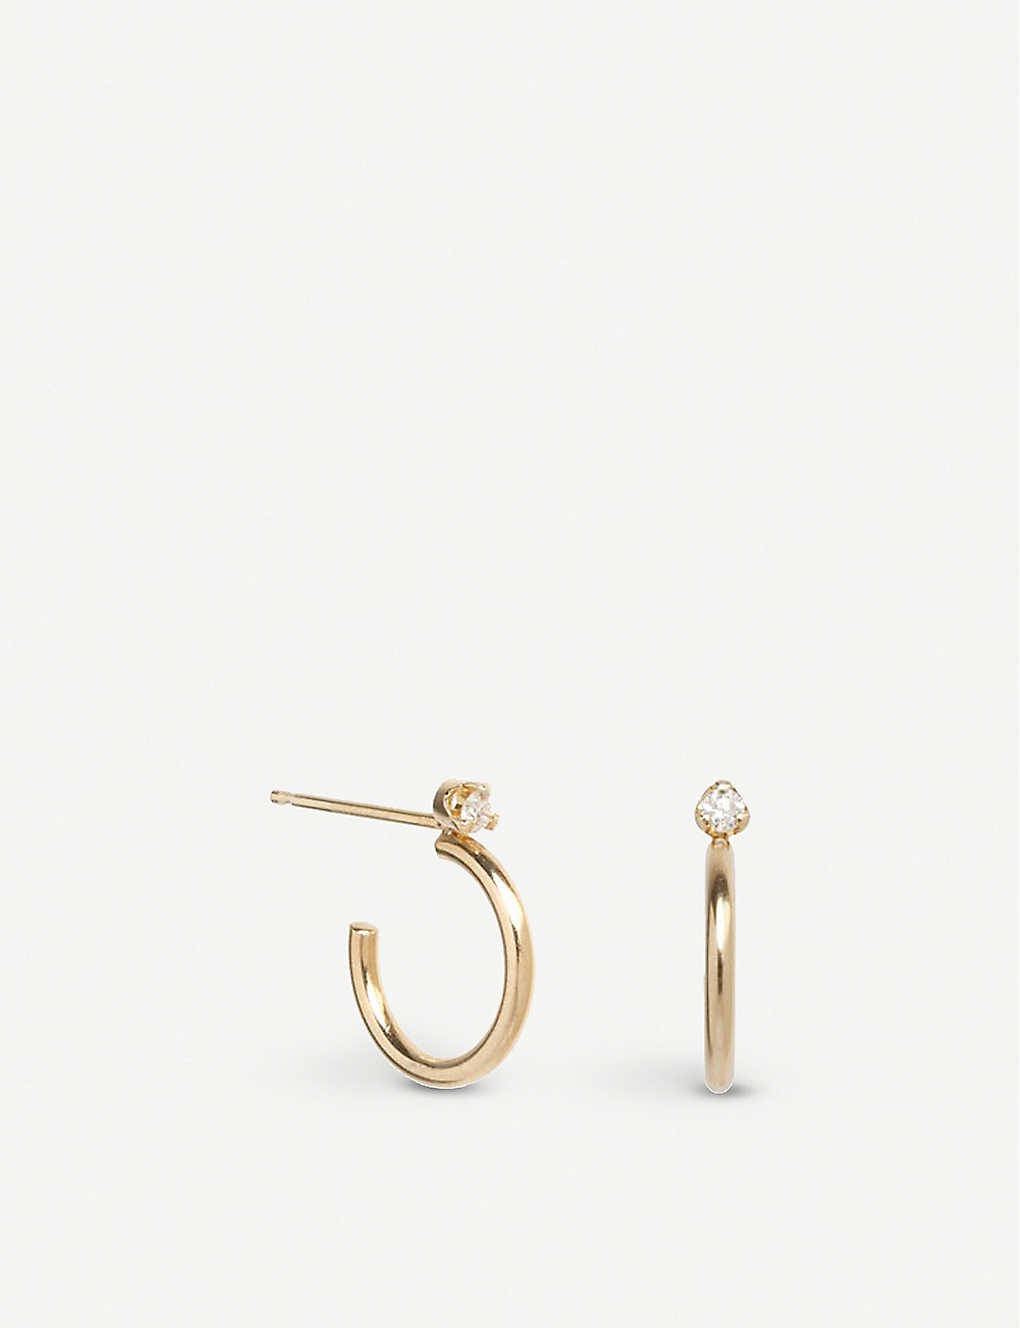 THE ALKEMISTRY: Zoë Chicco 14ct yellow-gold and diamond hoop earrings